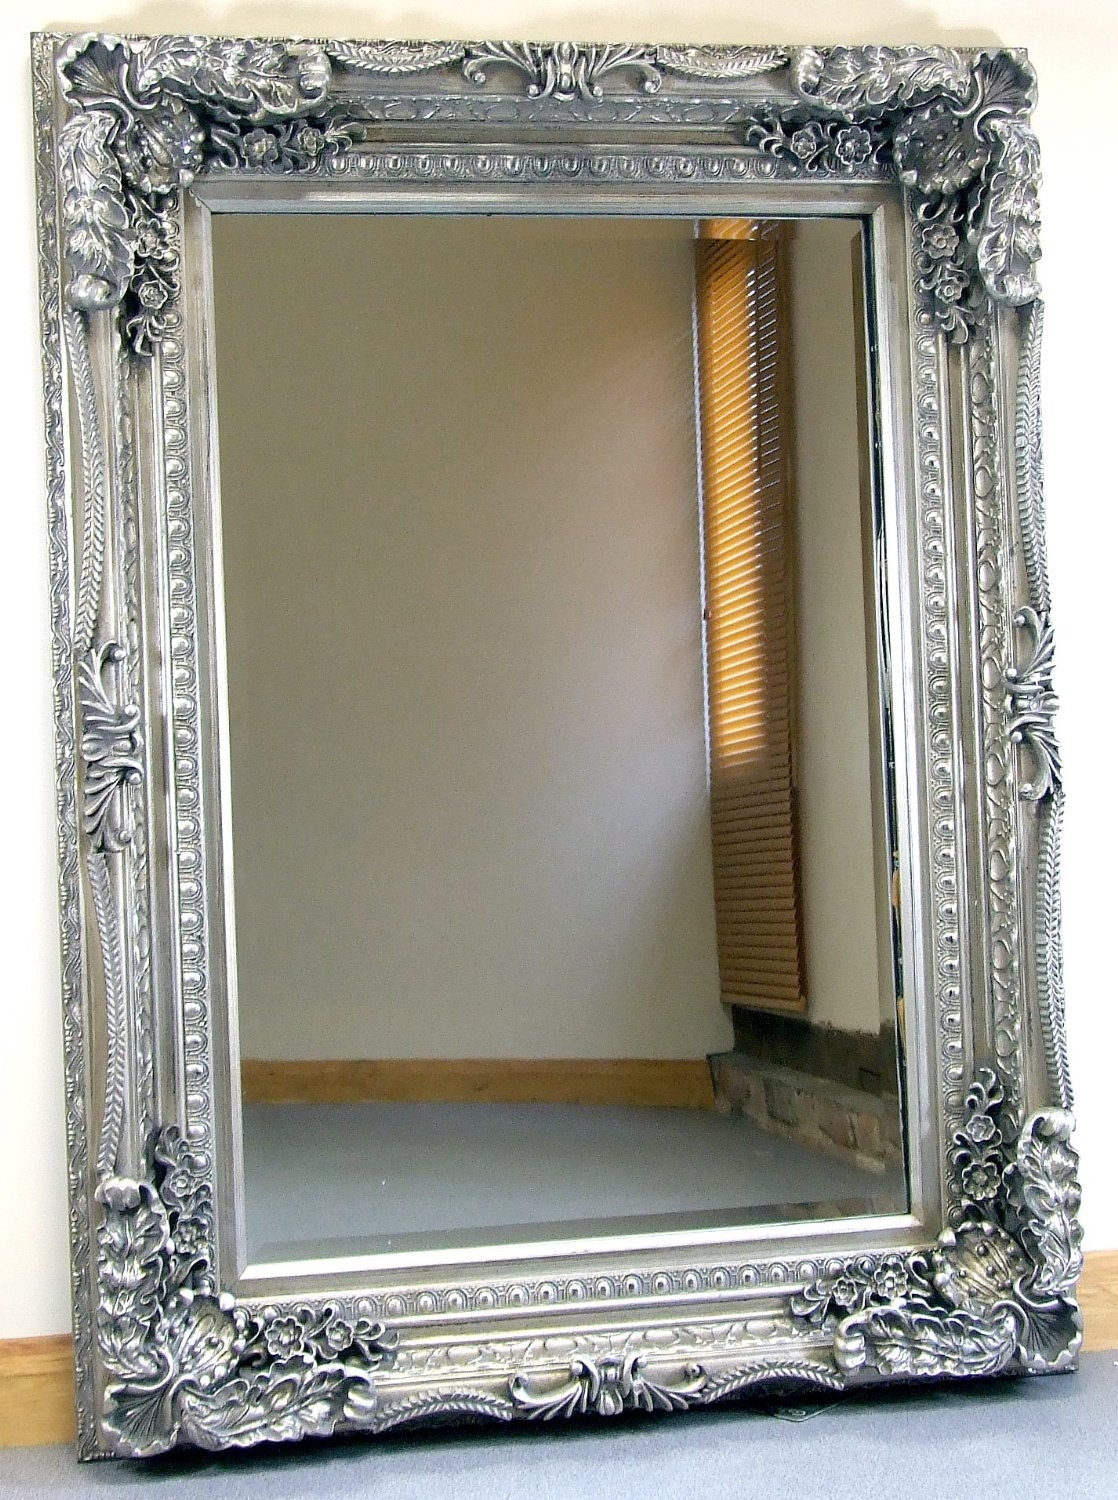 Carved Louis Silver Ornate French Frame Wall Over Mantle Mirror Pertaining To Ornate Mirrors Cheap (Image 7 of 15)